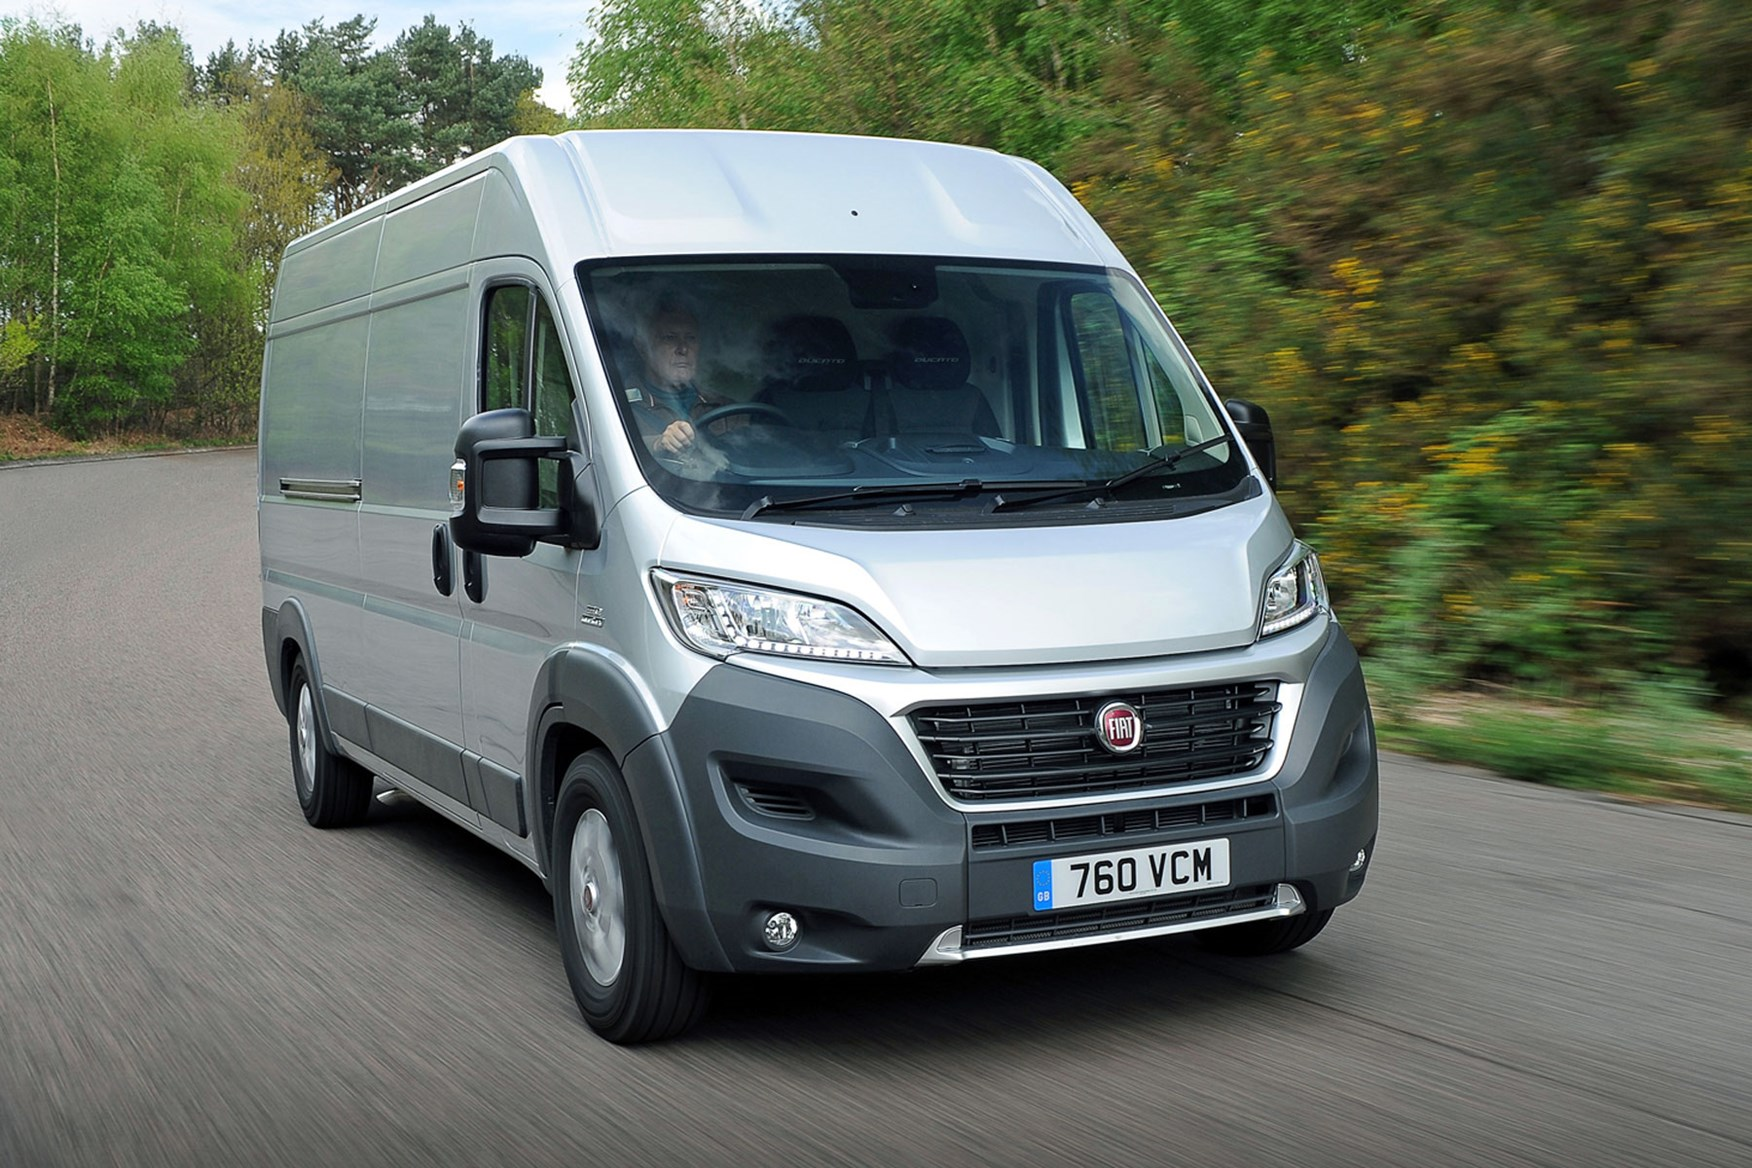 Fiat Ducato review - 2014 facelift, driving